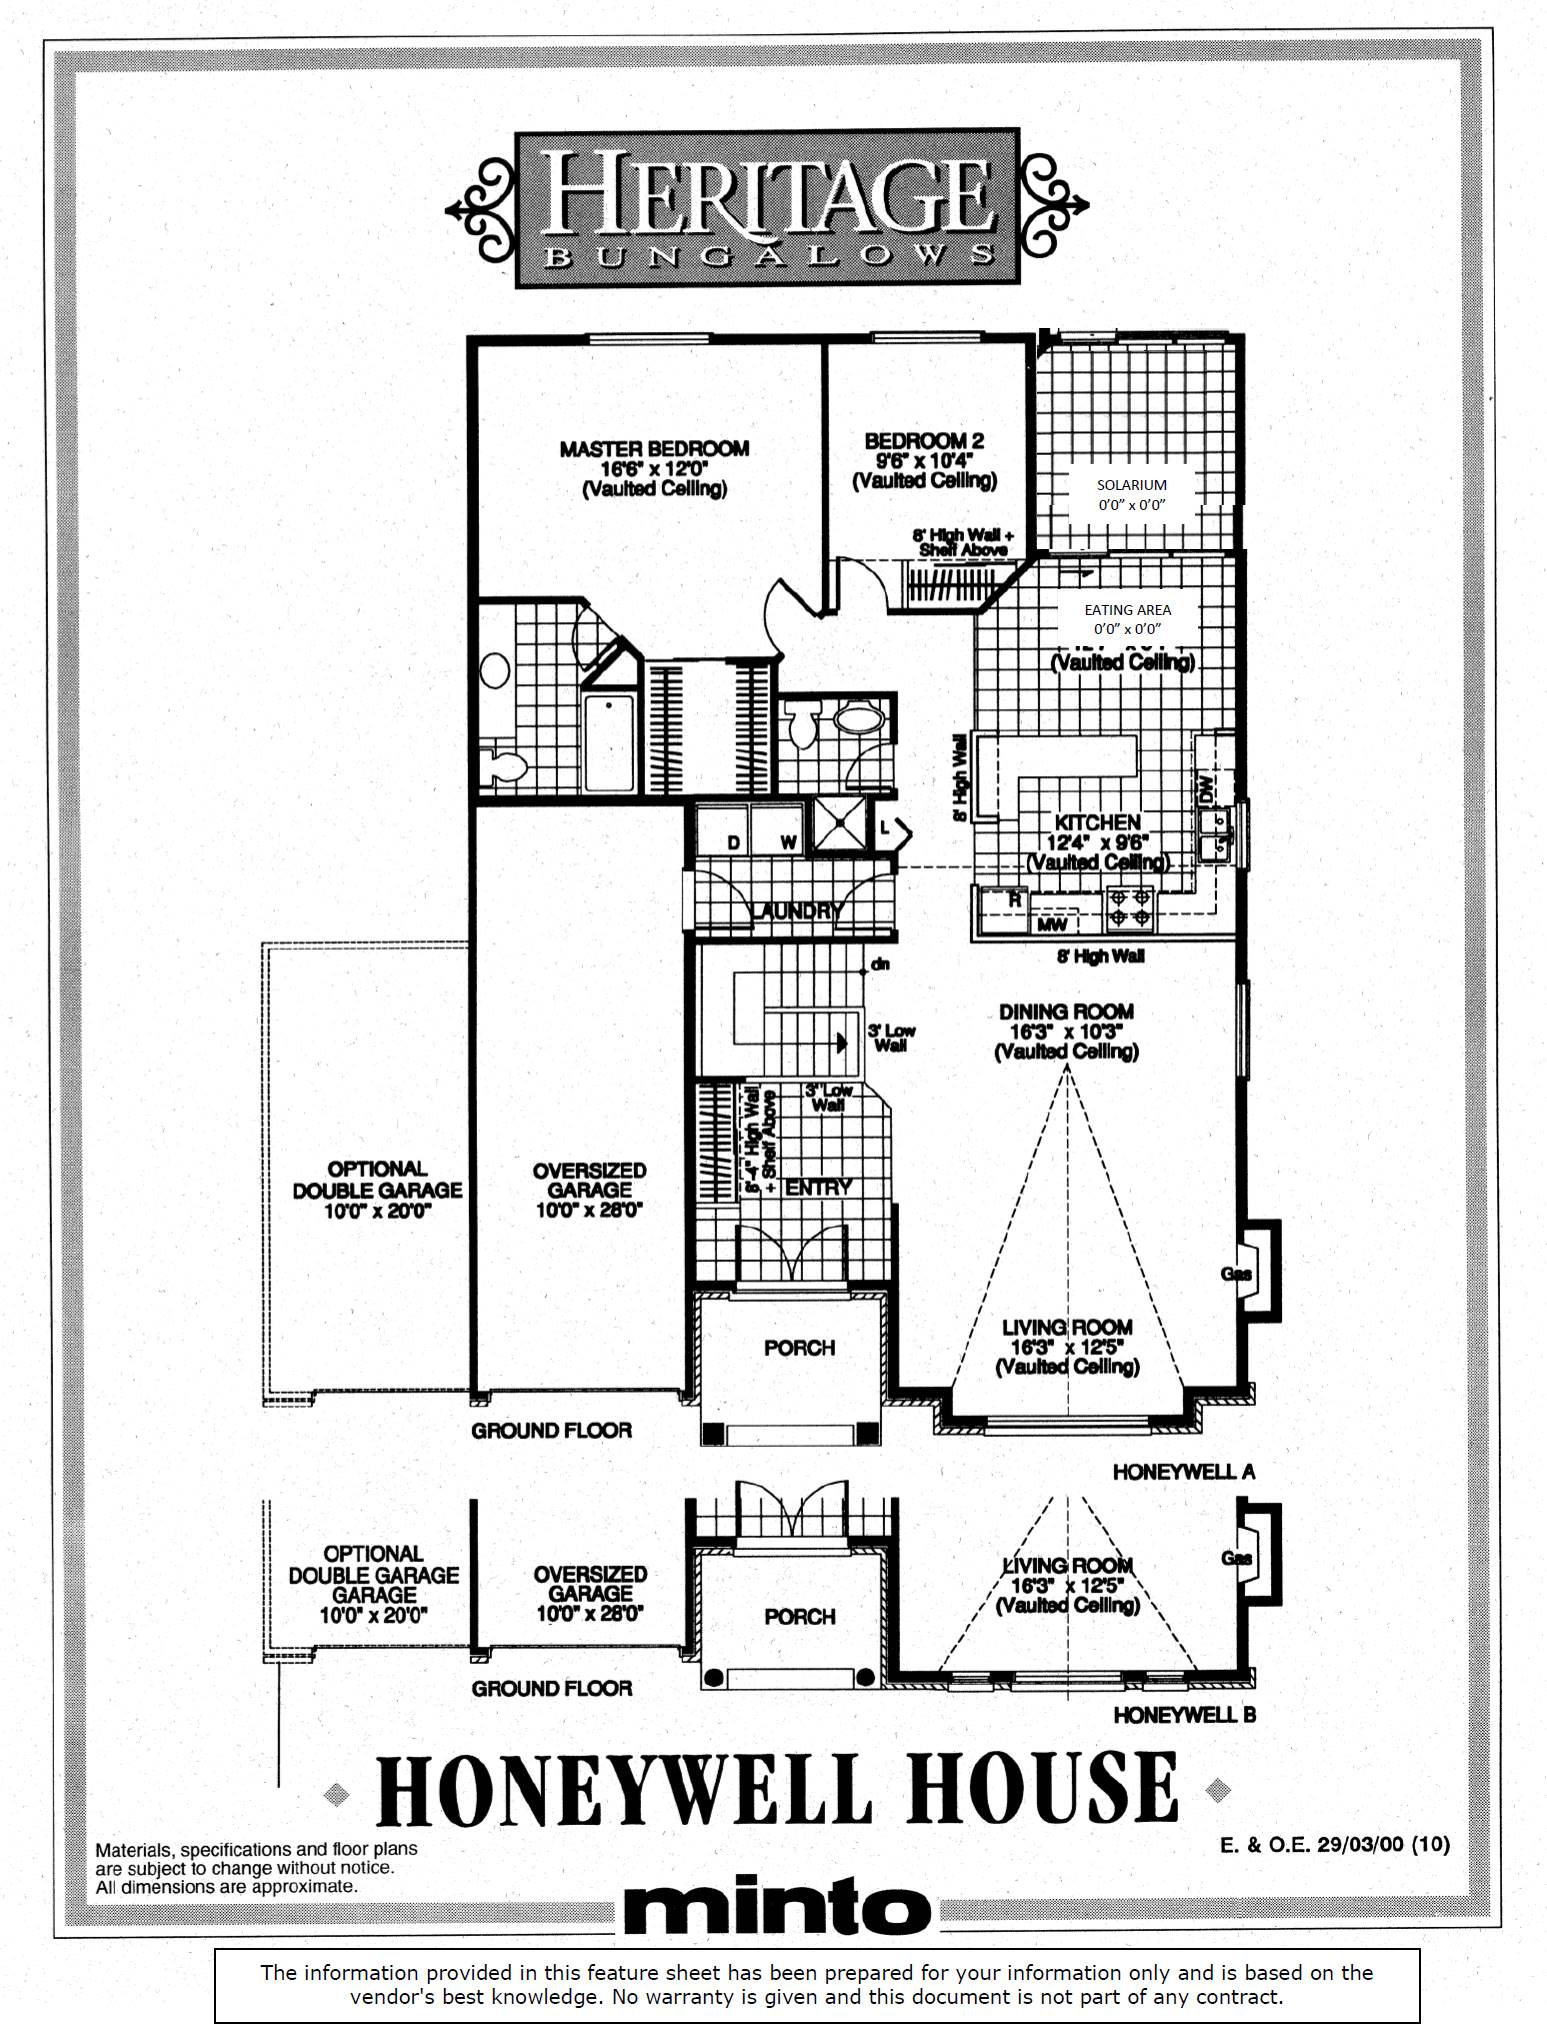 Floor Plan - Honeywell by Minto (Remodel).jpg